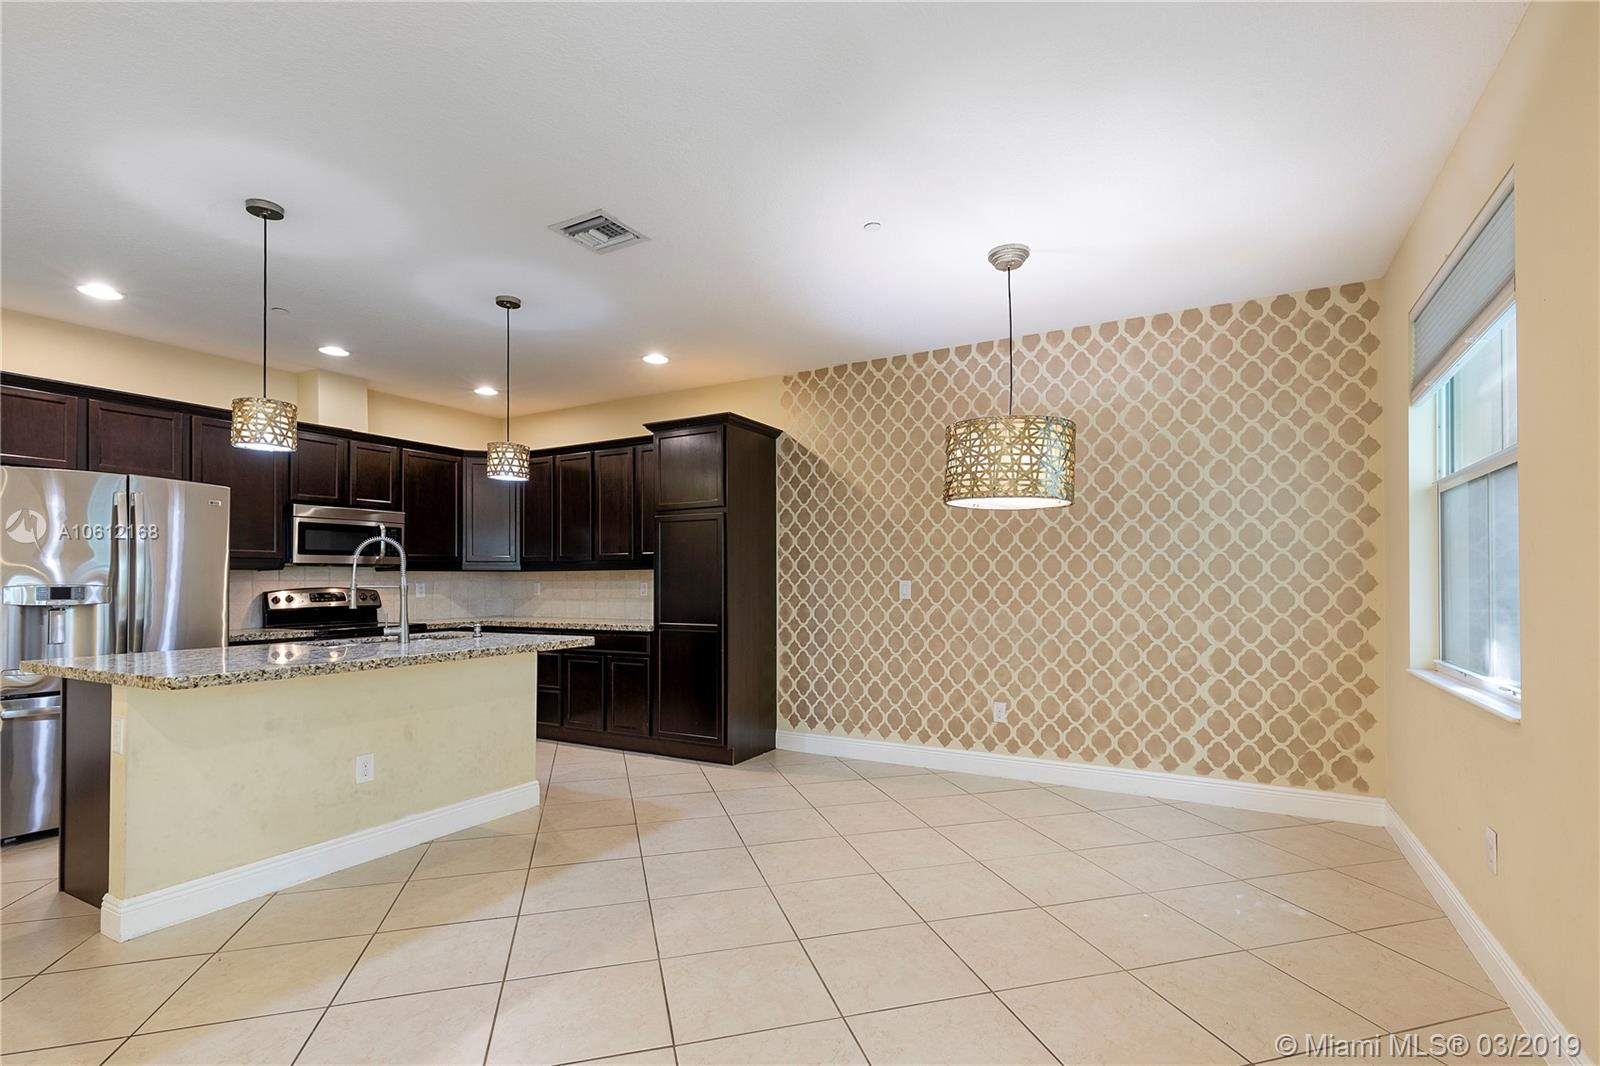 Cooper City Homes for Sale -  Townhome,  2922 Cascada Isles Way